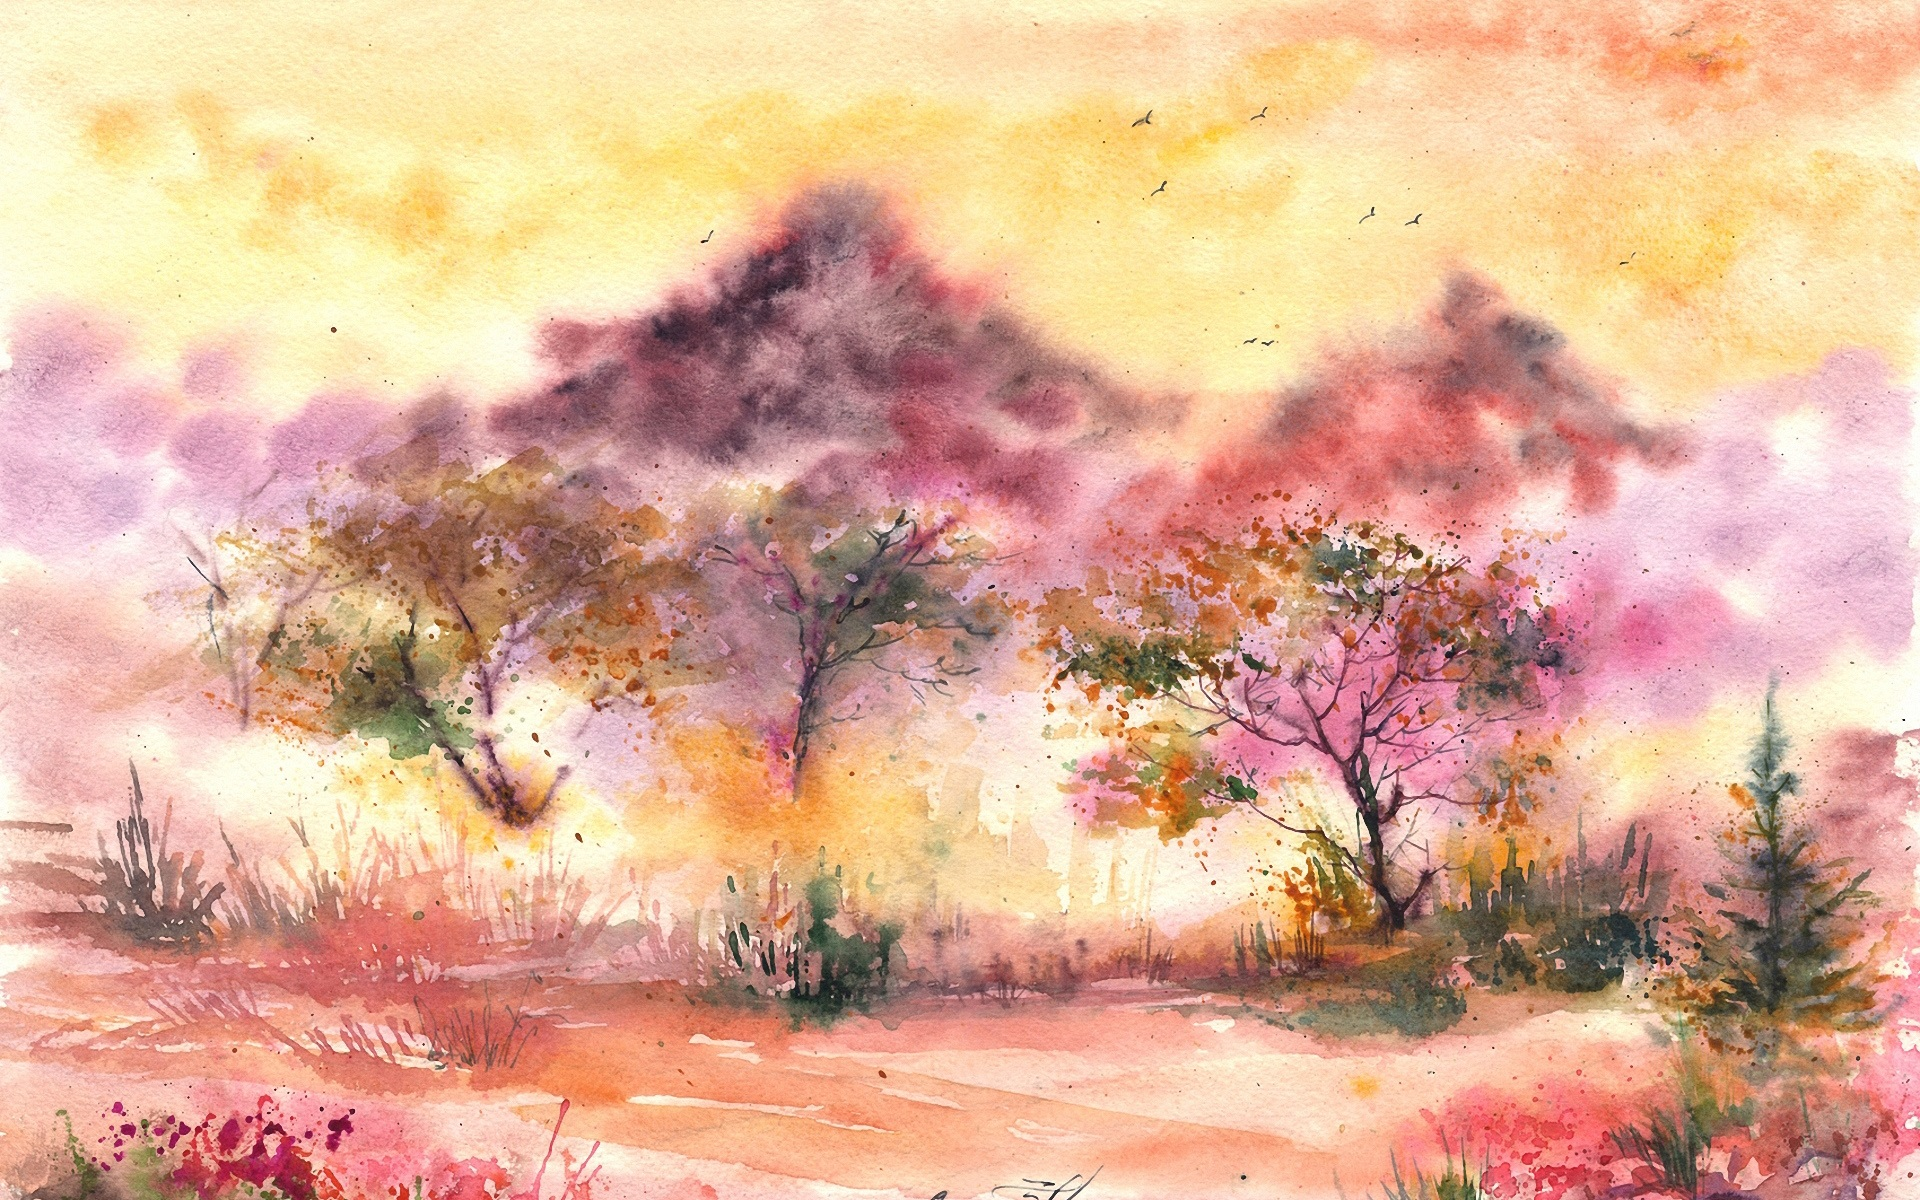 Wallpaper Watercolor Painting Landscape Trees Birds Leaves